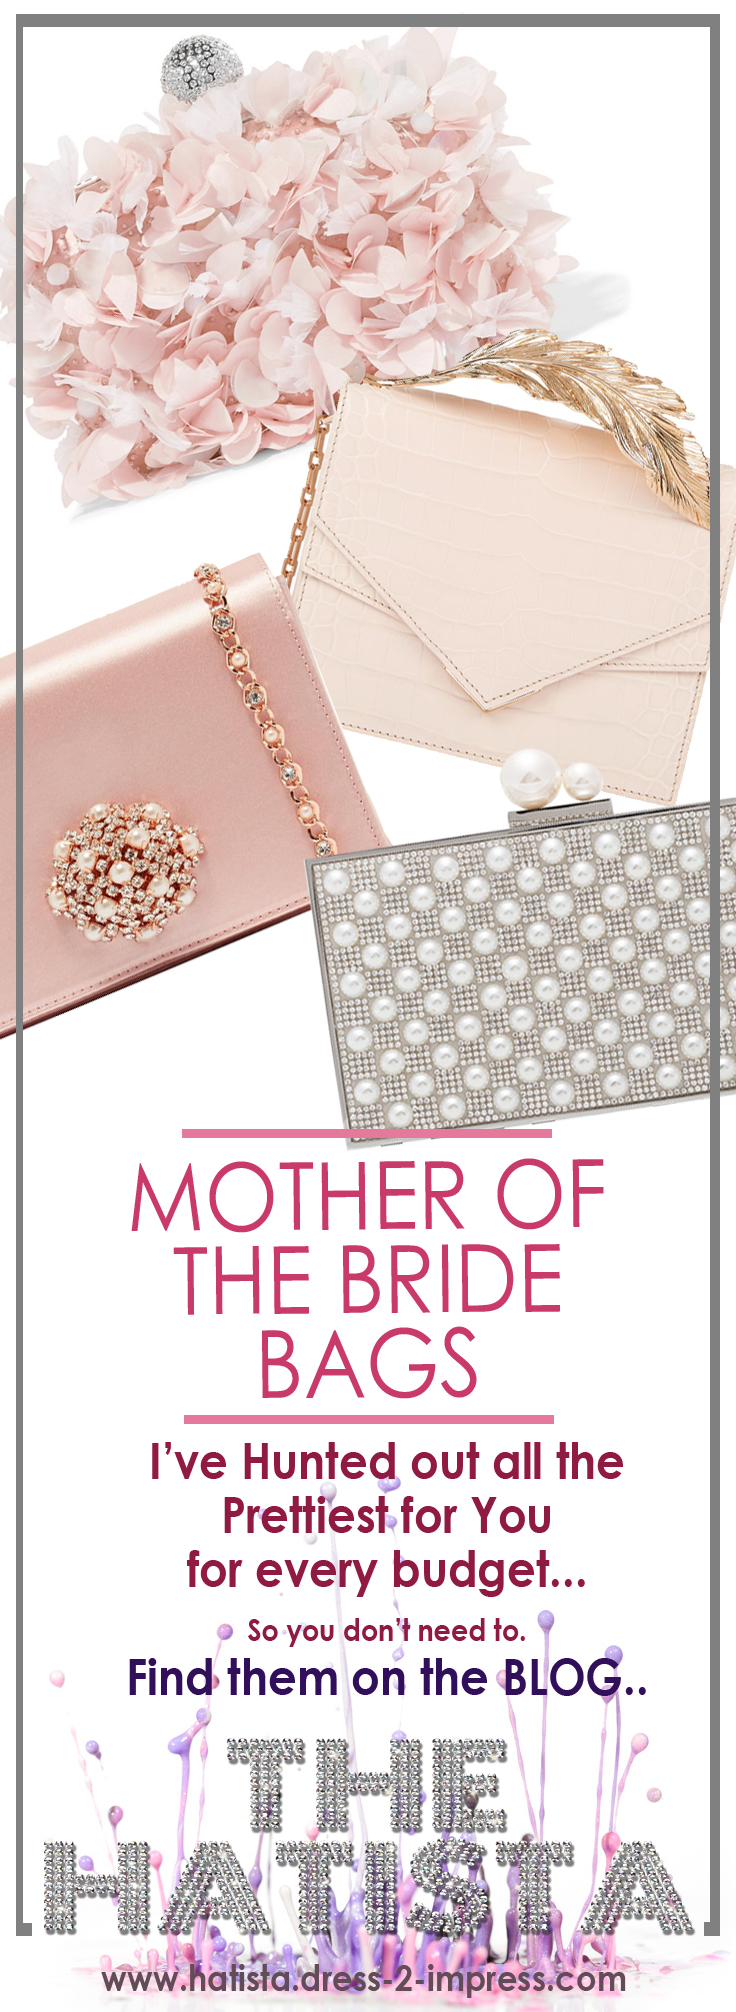 Clutch Bags, Best Clutch Bags for Mother of the Bride, Mother of the Bride Outfits, Luxury Bags for Weddings, Wedding Outfits for Mother of the Bride, Mother of the Groom Outfits, What to wear as Mother of the Groom